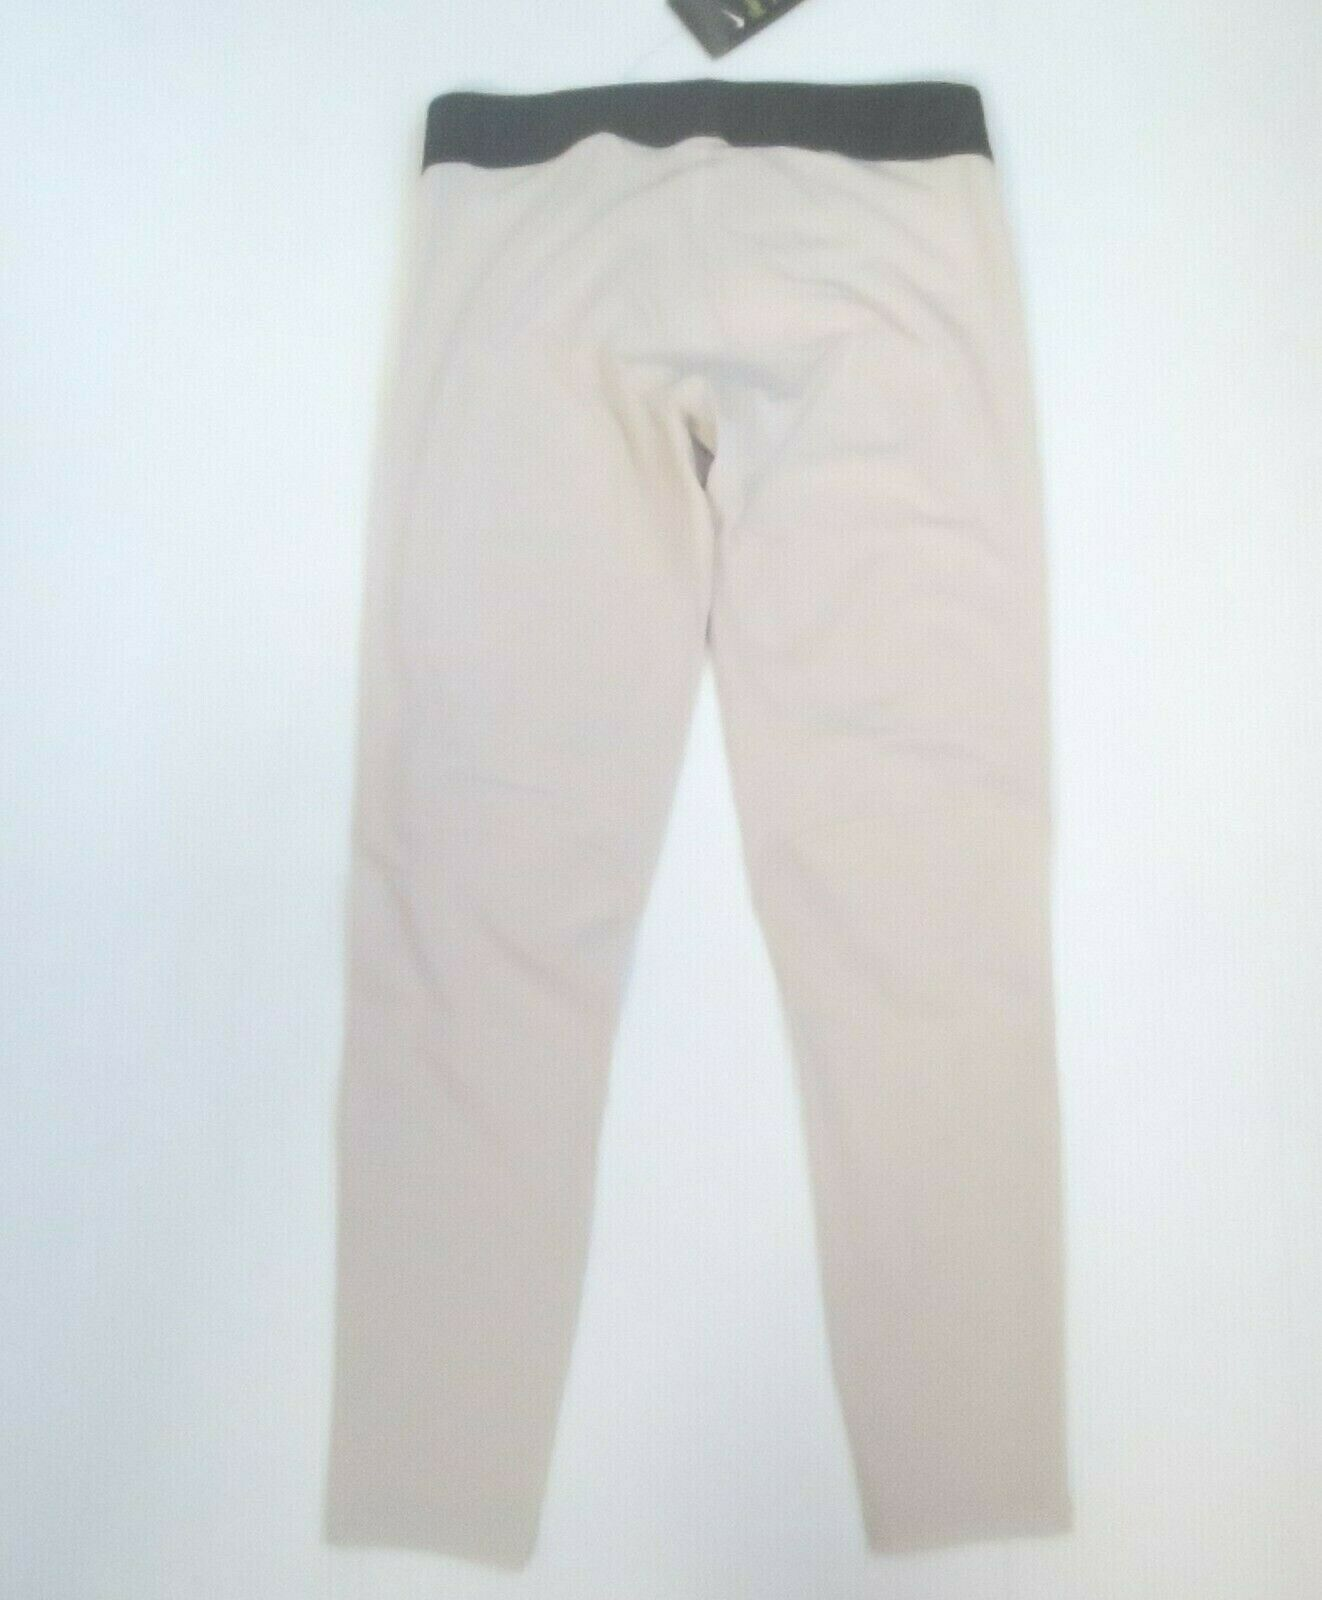 Nike Men PRO Premium Tights Pants - 928996 - Sand 008 - Size L - NWT image 6